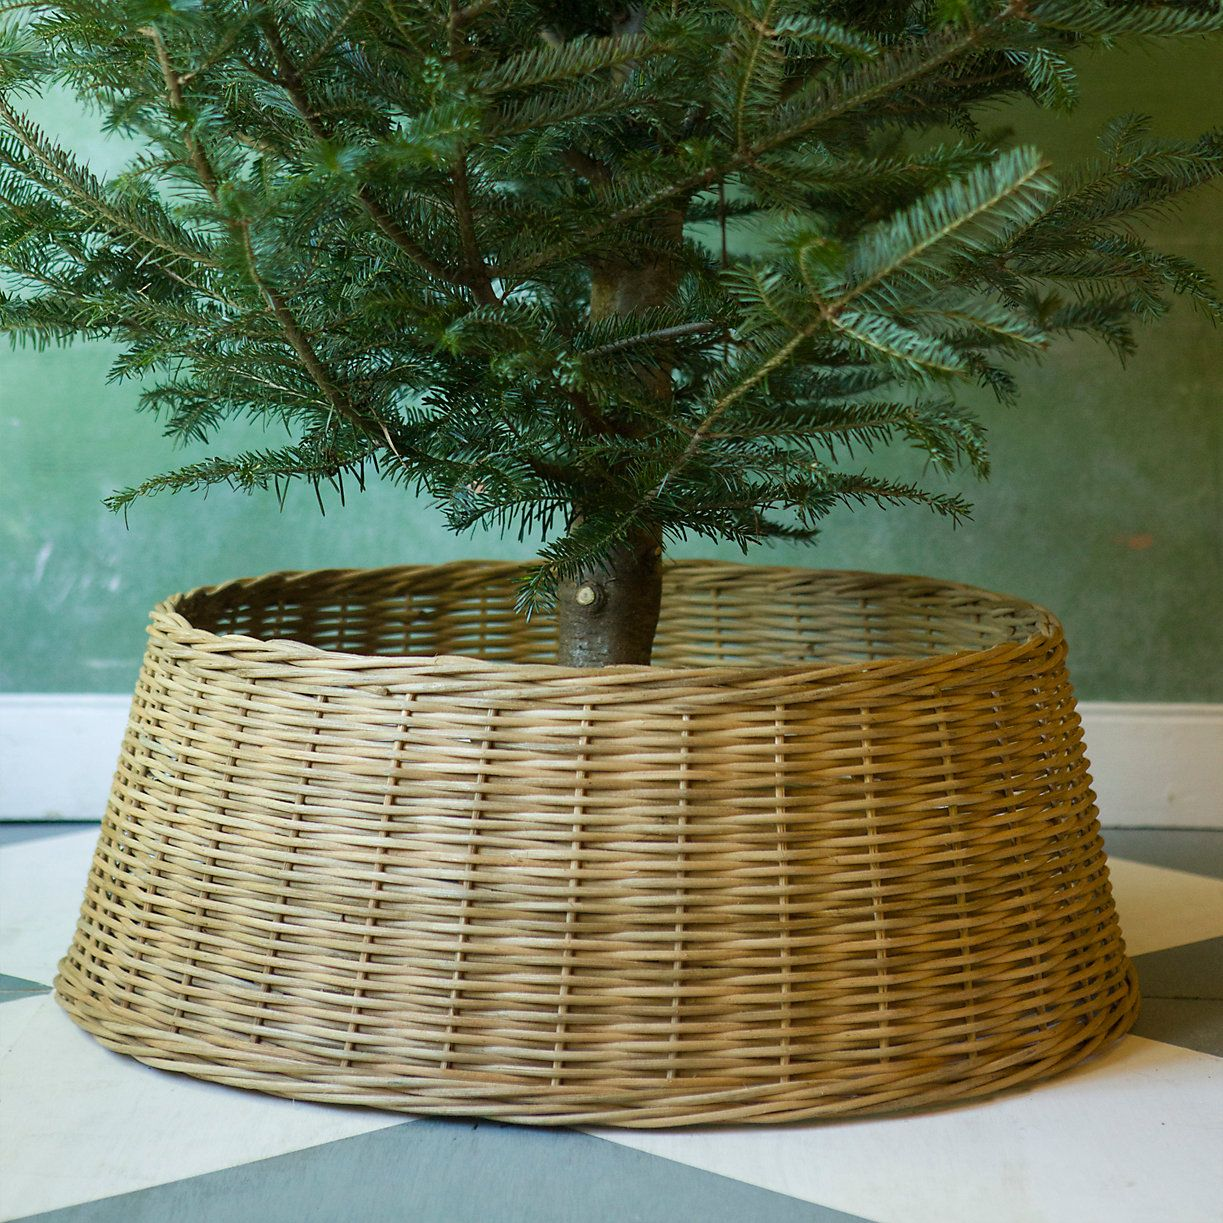 Wicker Basket Tree Skirt In HOLIDAY Skirts Toppers At Terrain